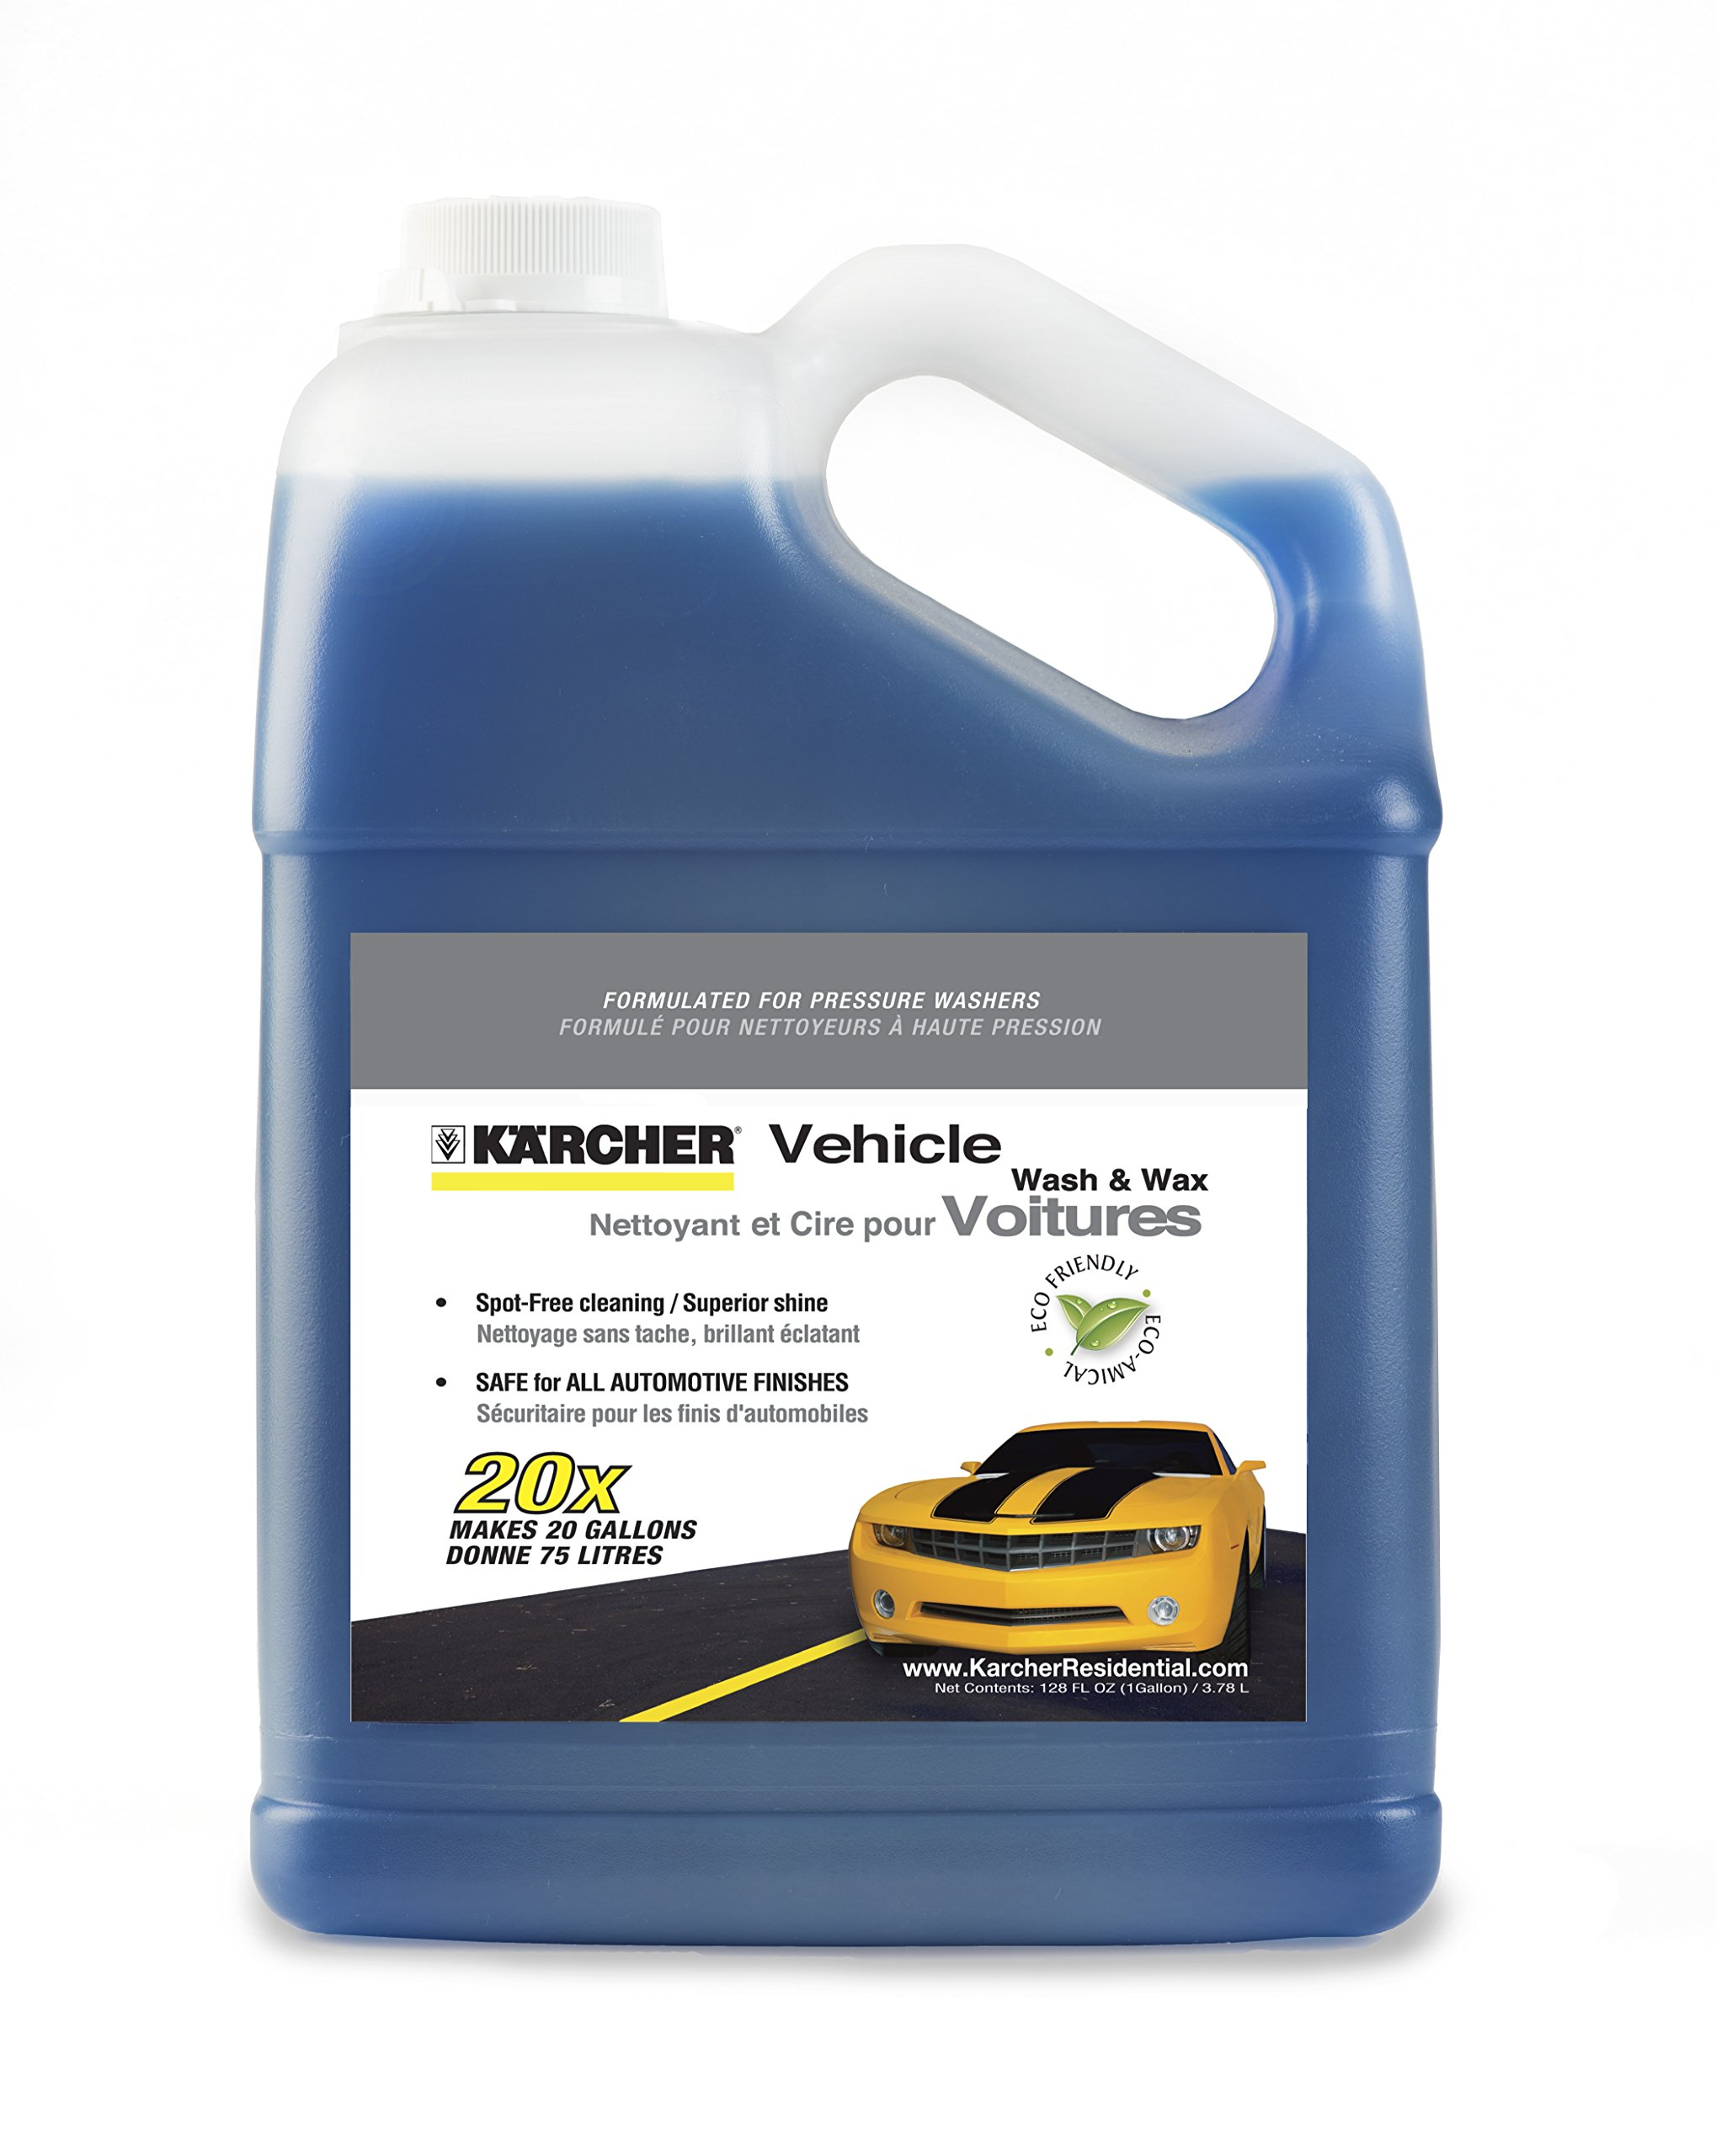 karcher-concentrated-vehicle-detergent-car-wash-wax-soap-for-gas-electric-pressure-washers-best-pressure-washer-detergent-soap-reviews